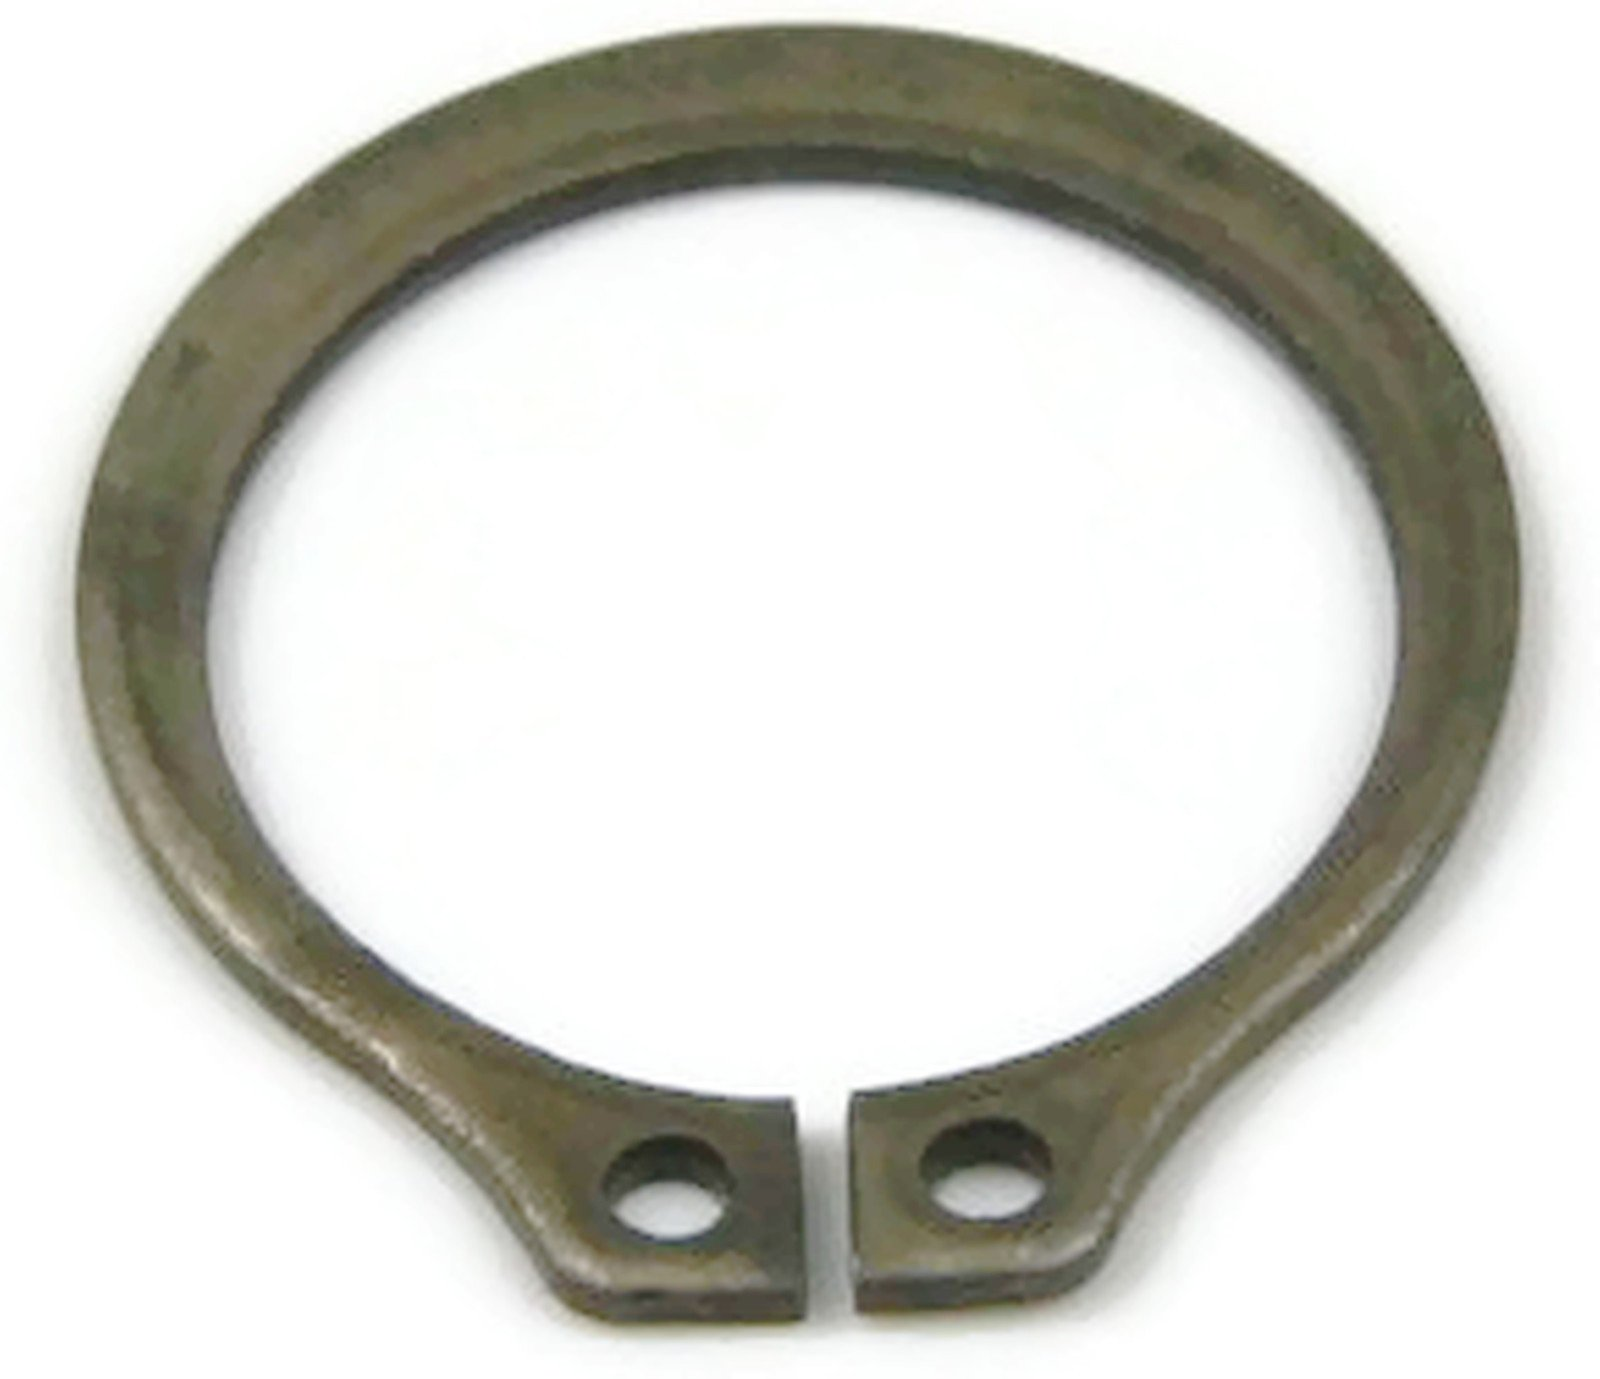 Stainless Steel Snap Rings Retaining Rings SH-287SS 2-7/8'' Qty 25